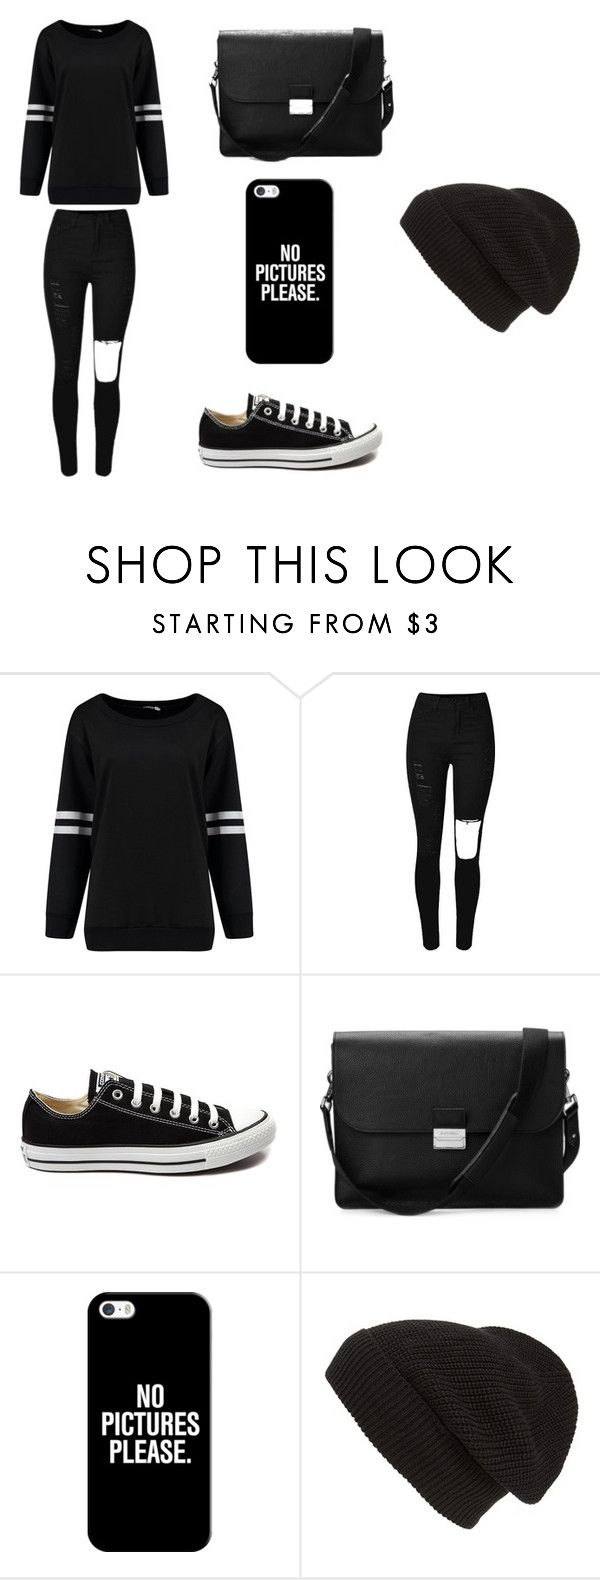 """""""Untitled #96"""" by karenrodriguez-iv on Polyvore featuring Converse, Aspinal of London, Casetify, Phase 3, women's clothing, women, female, woman, misses and juniors"""